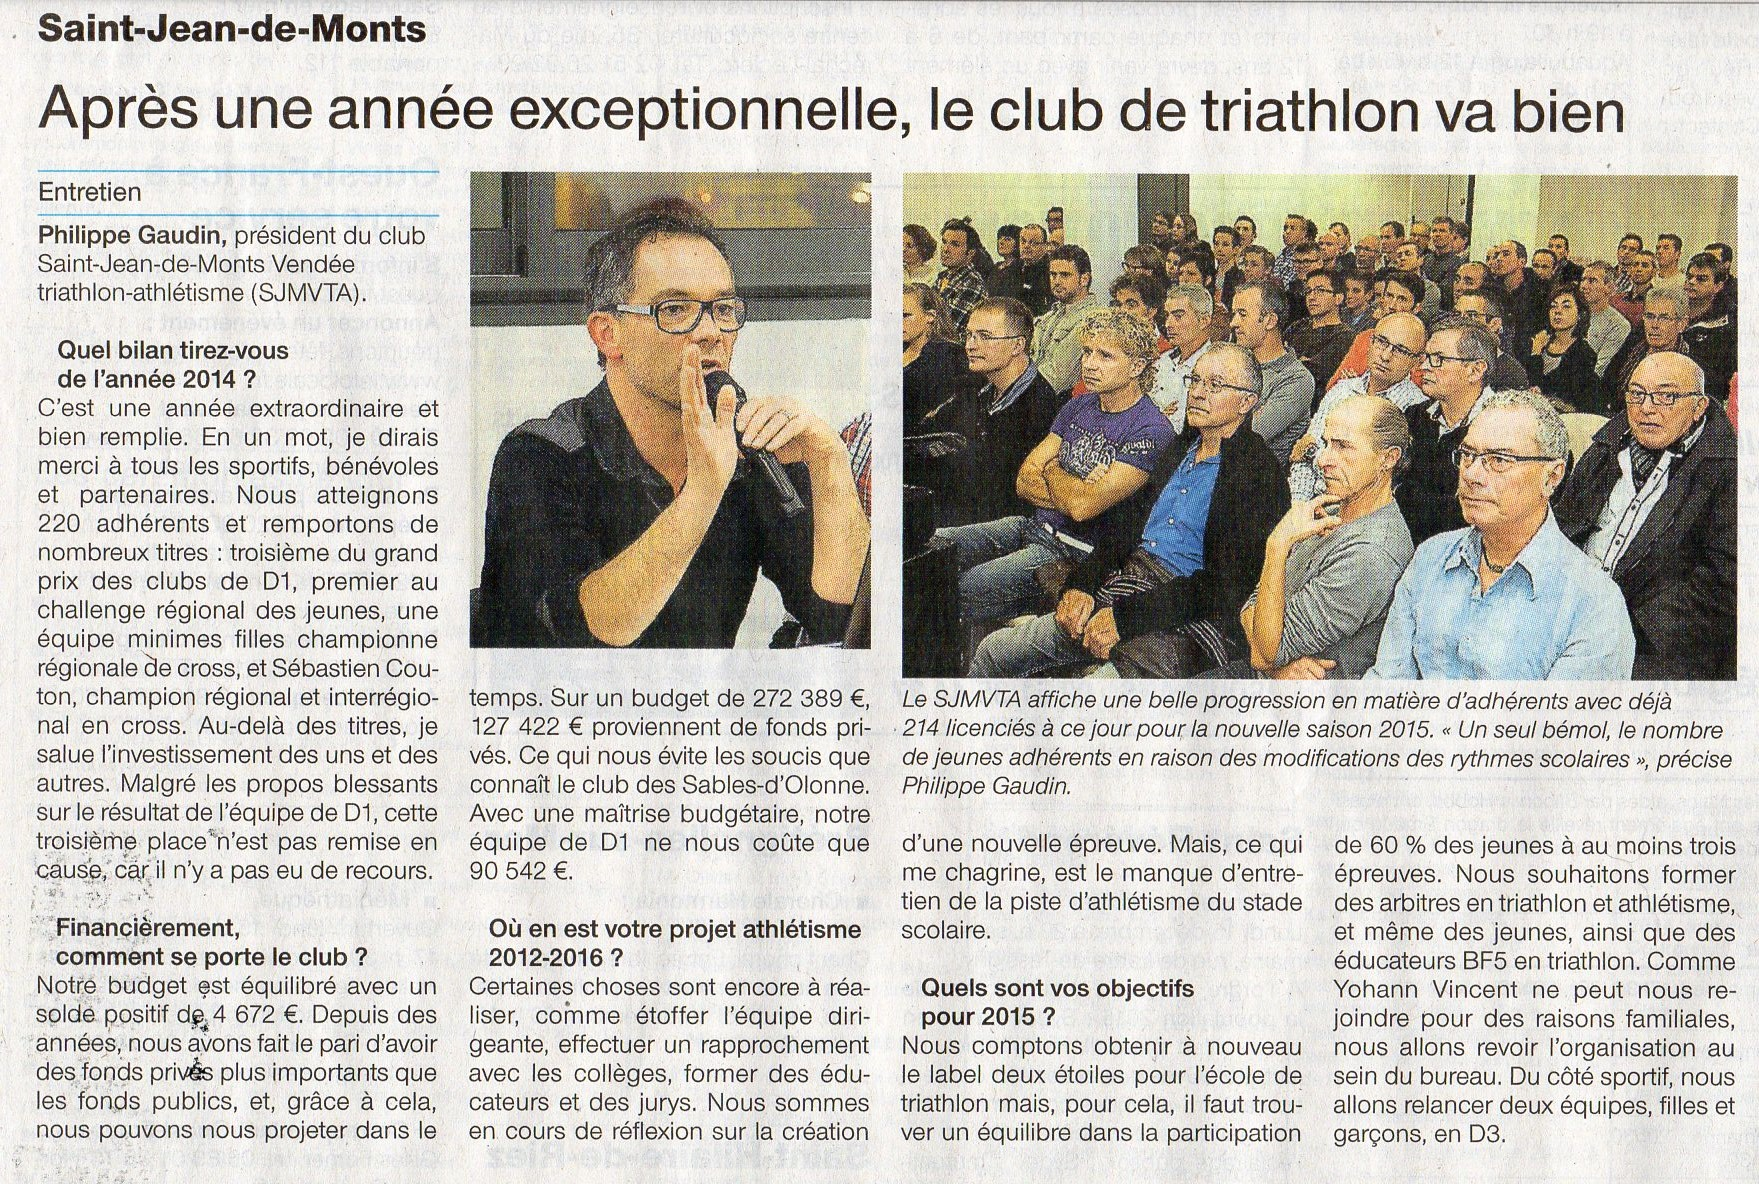 OUEST FRANCE 15-12-2014 SAINT JEAN DE MONTS TRIATHLON